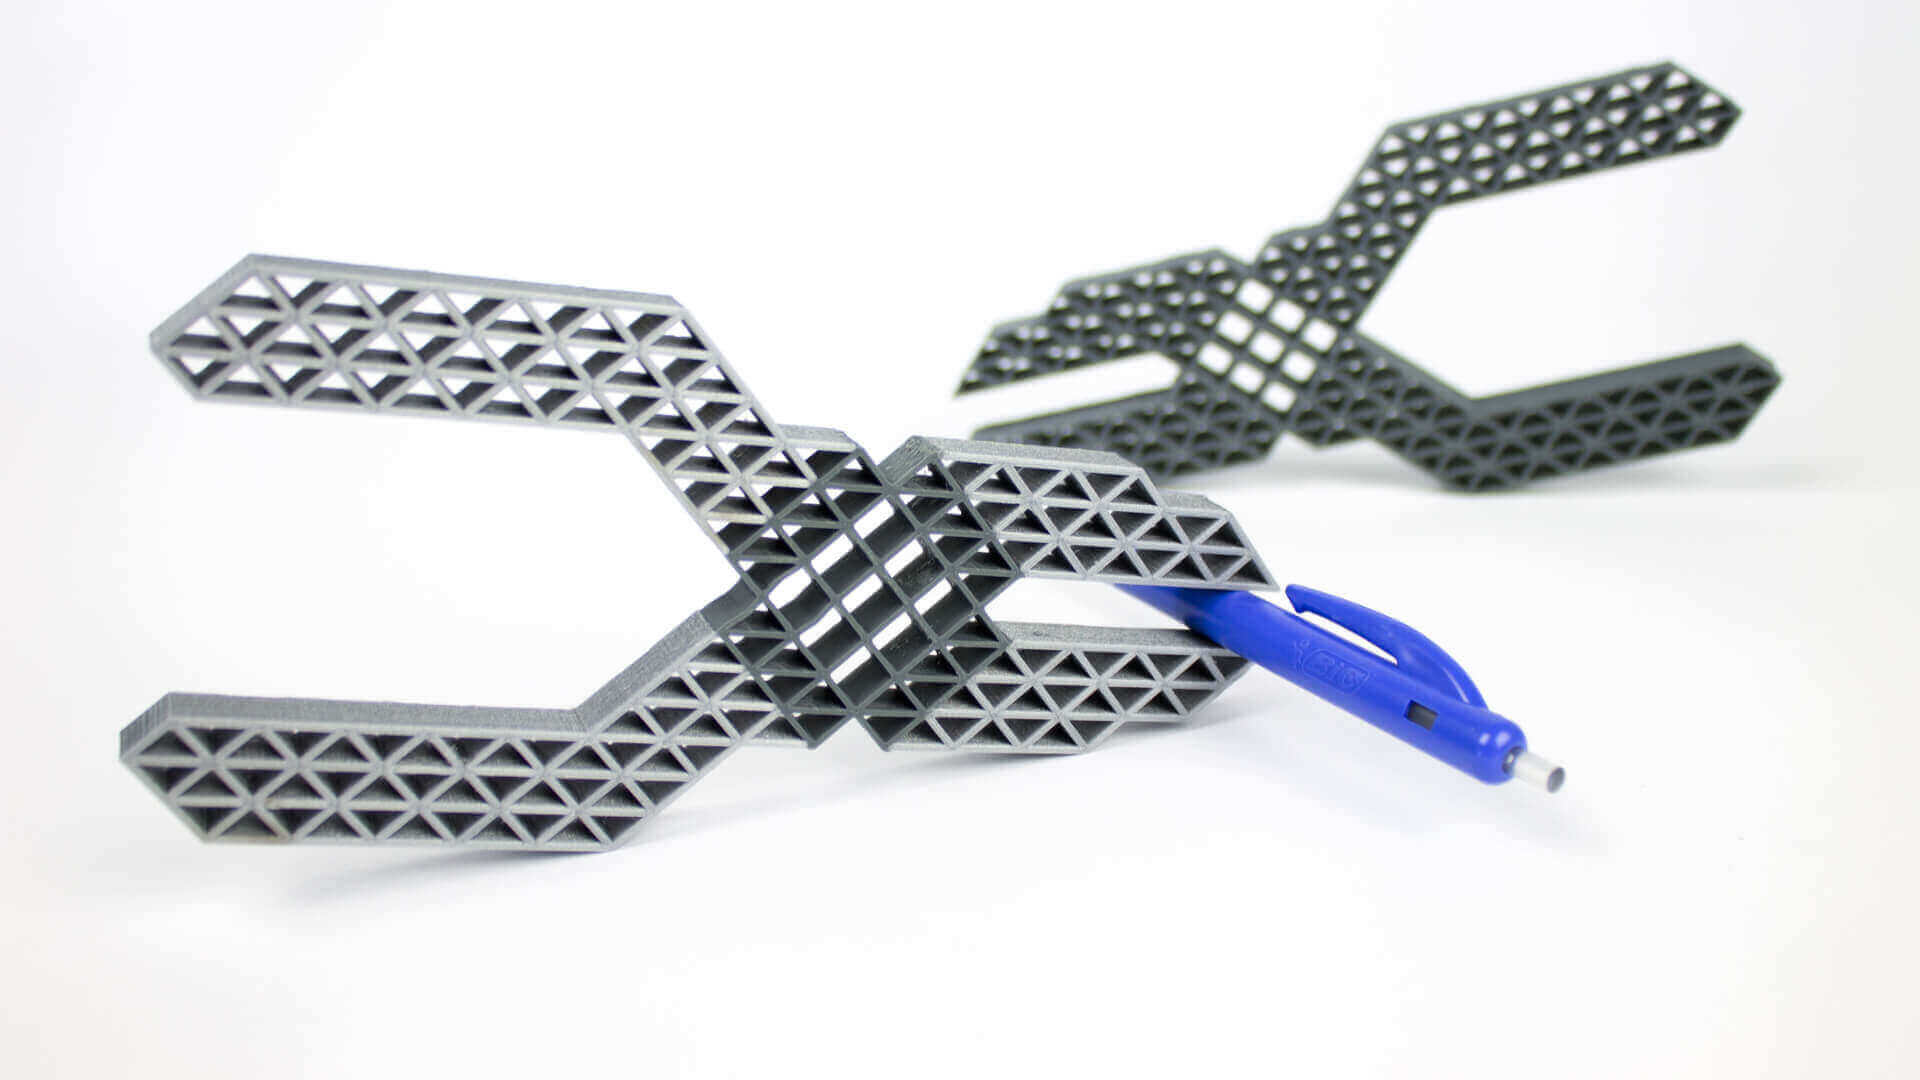 3D Printed Flexible Pliers Made With Dual Extrusion | All3DP